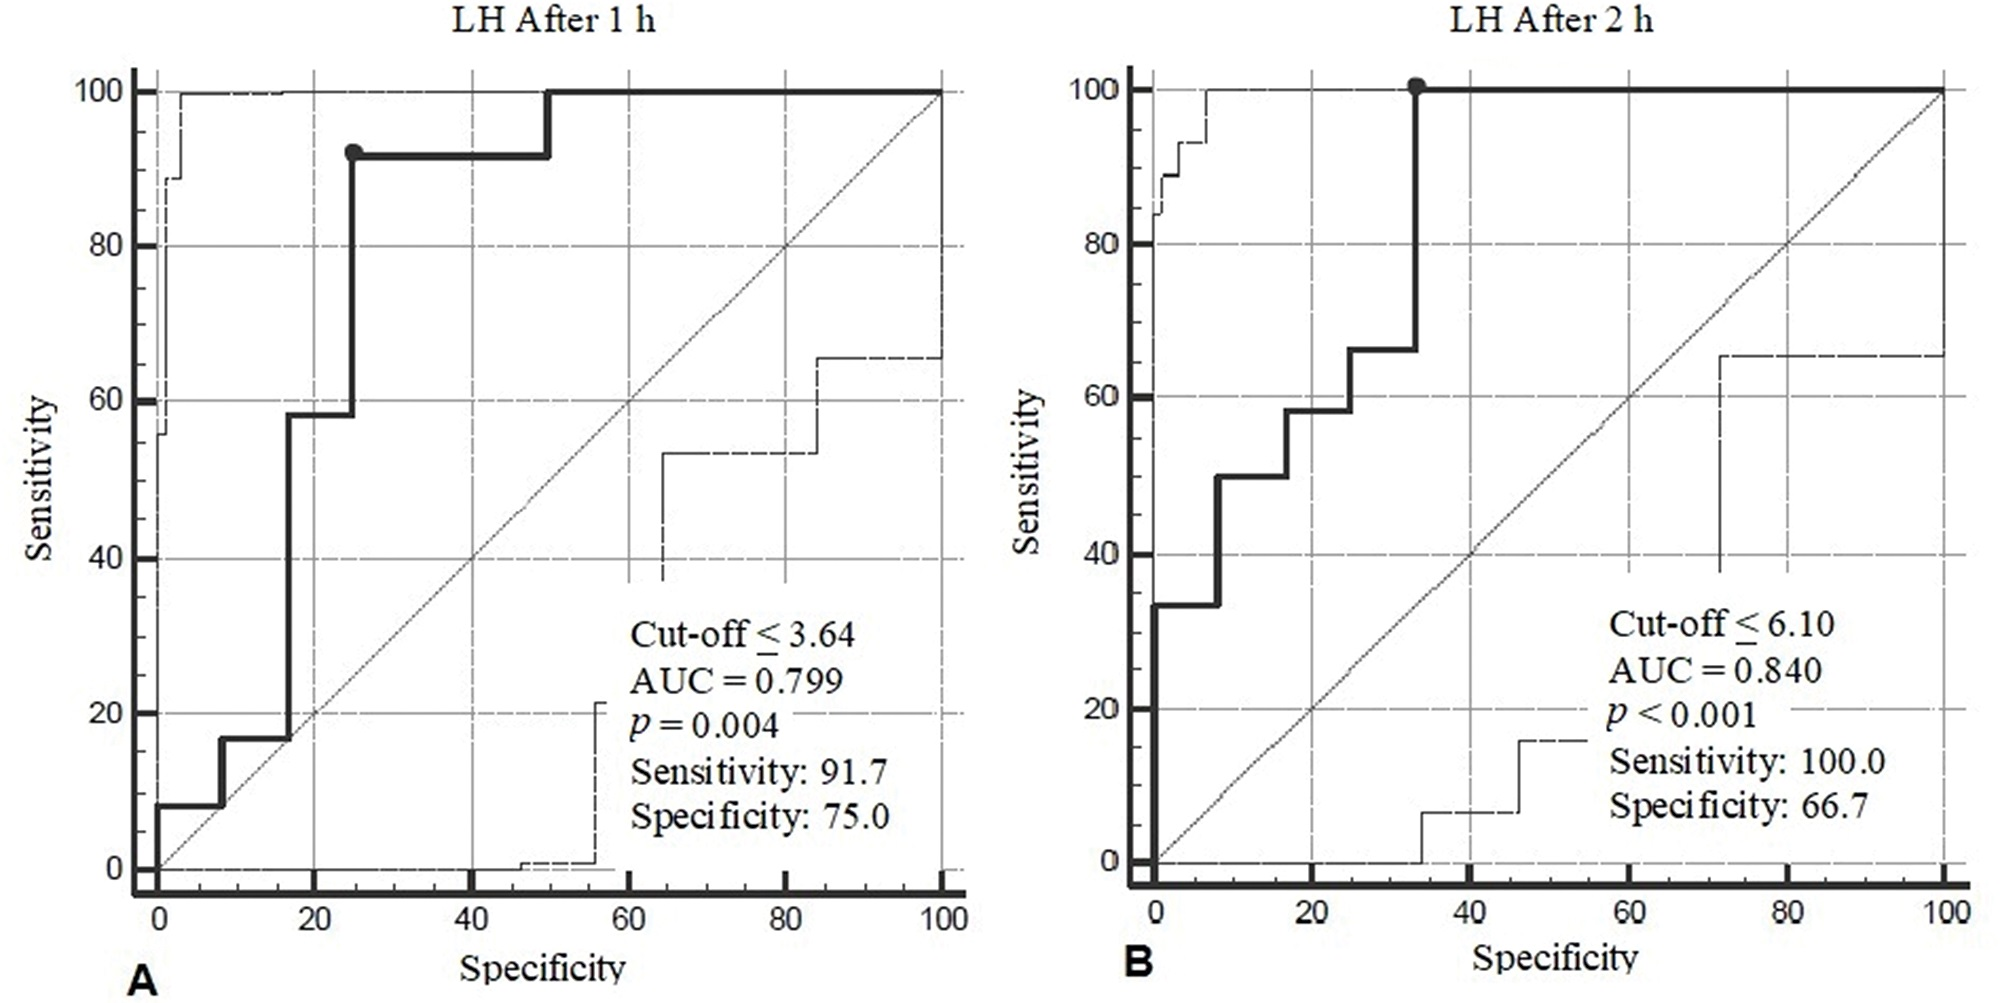 ROC curves of LH levels measured at 1 h (A) and 2 h (B) after intramuscular administration of 3.75 mg LA (GnRH analog test). AUC: Area Under the Curve.